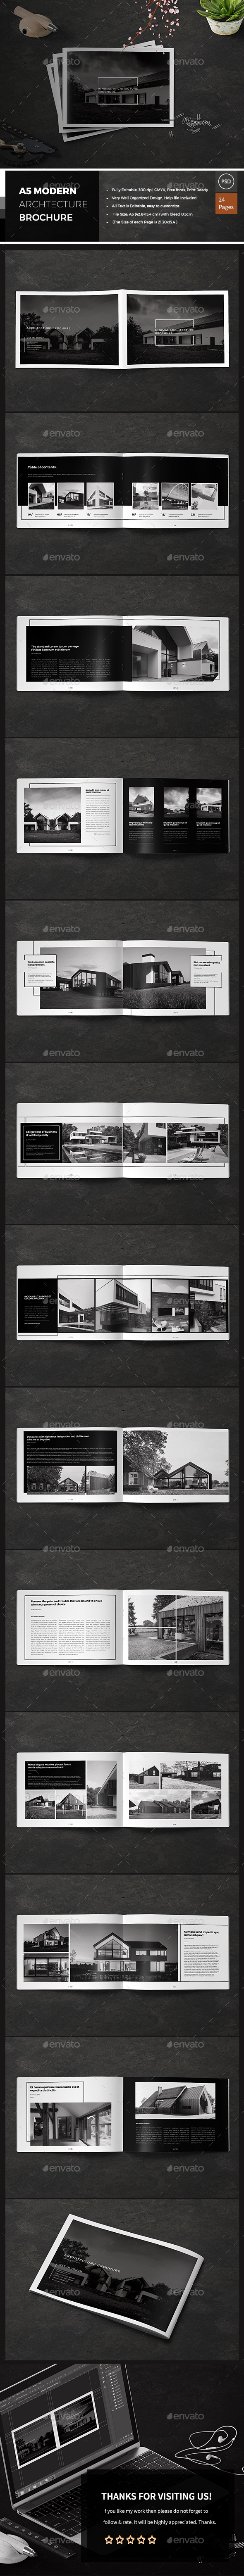 Modern Architecture Brochure - Catalogs Brochures